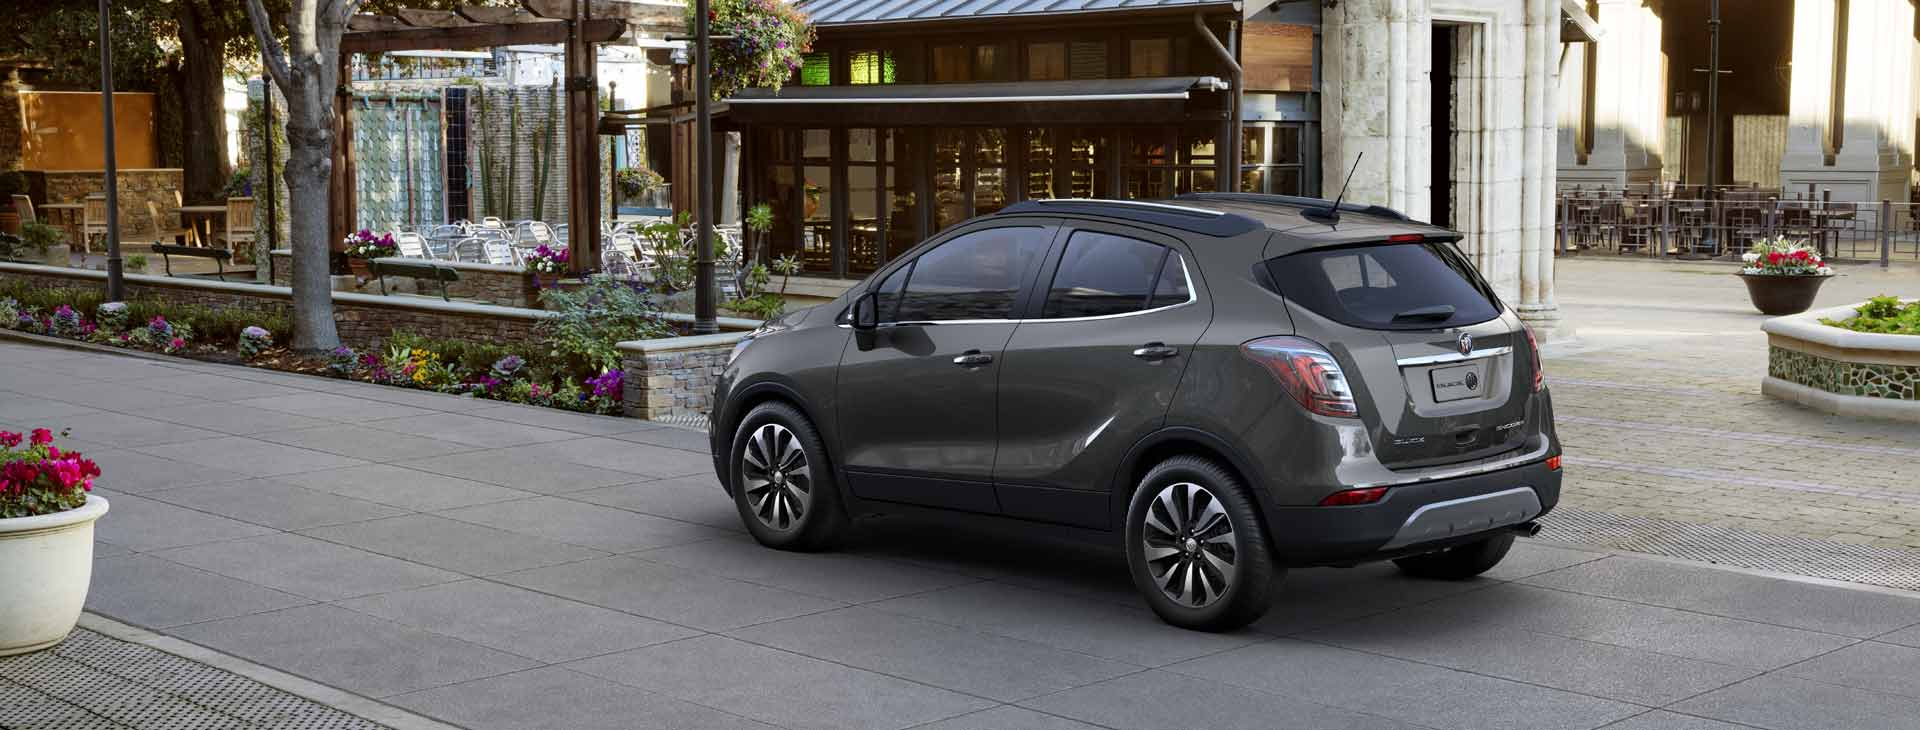 New Buick Encore Exterior main image